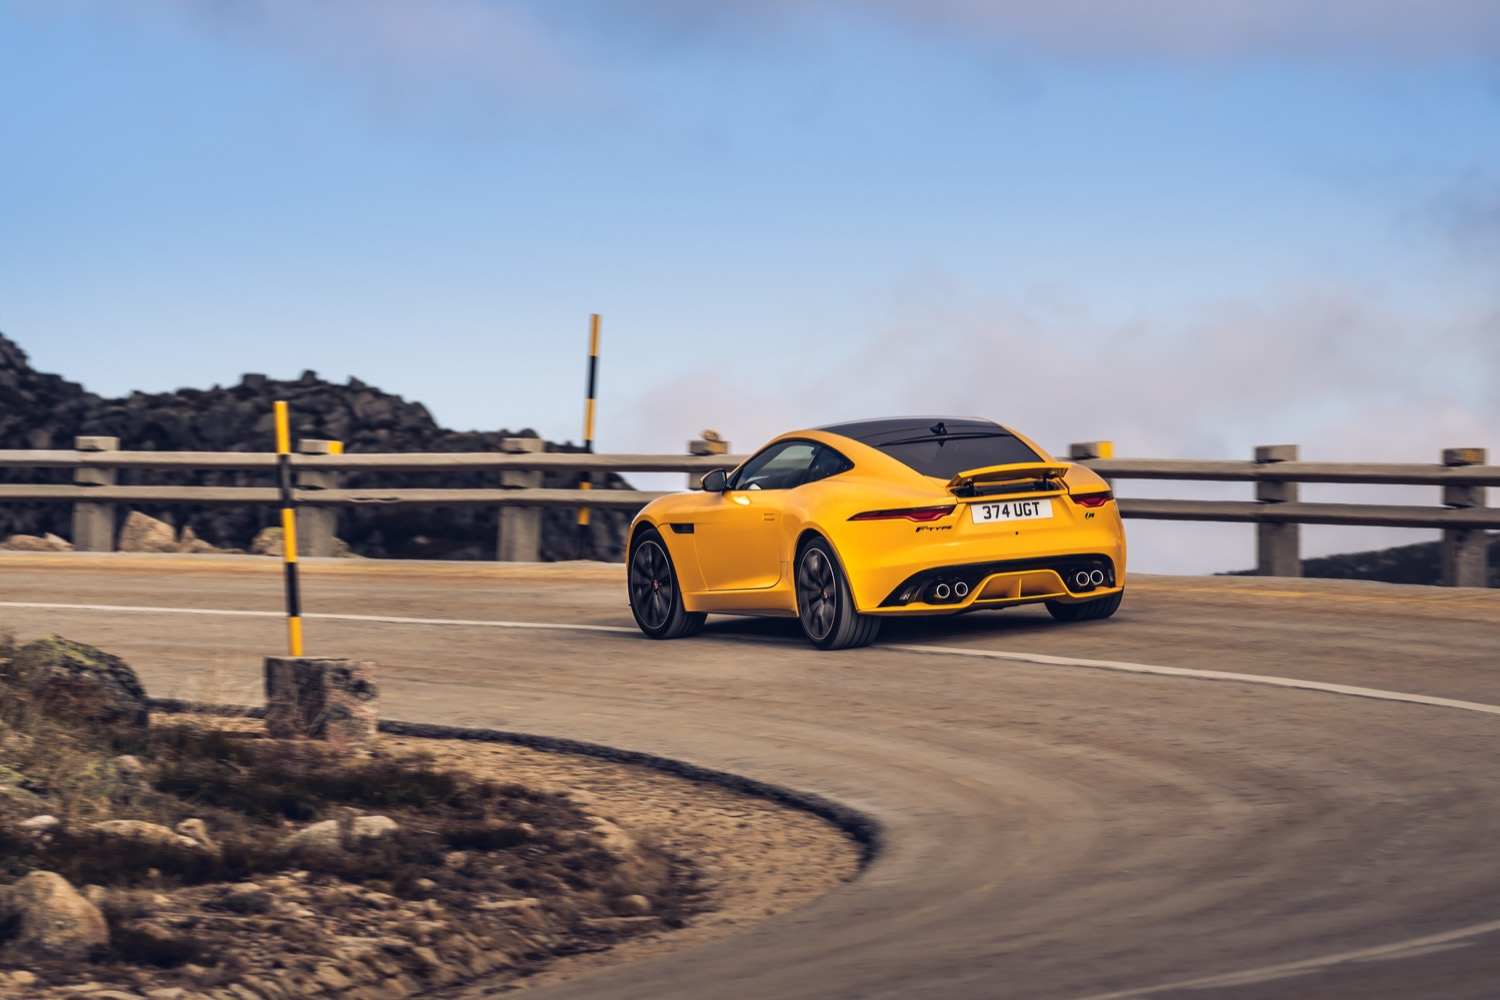 2020_jaguar_ftype_v8_awd_coupe_yellow_test_09